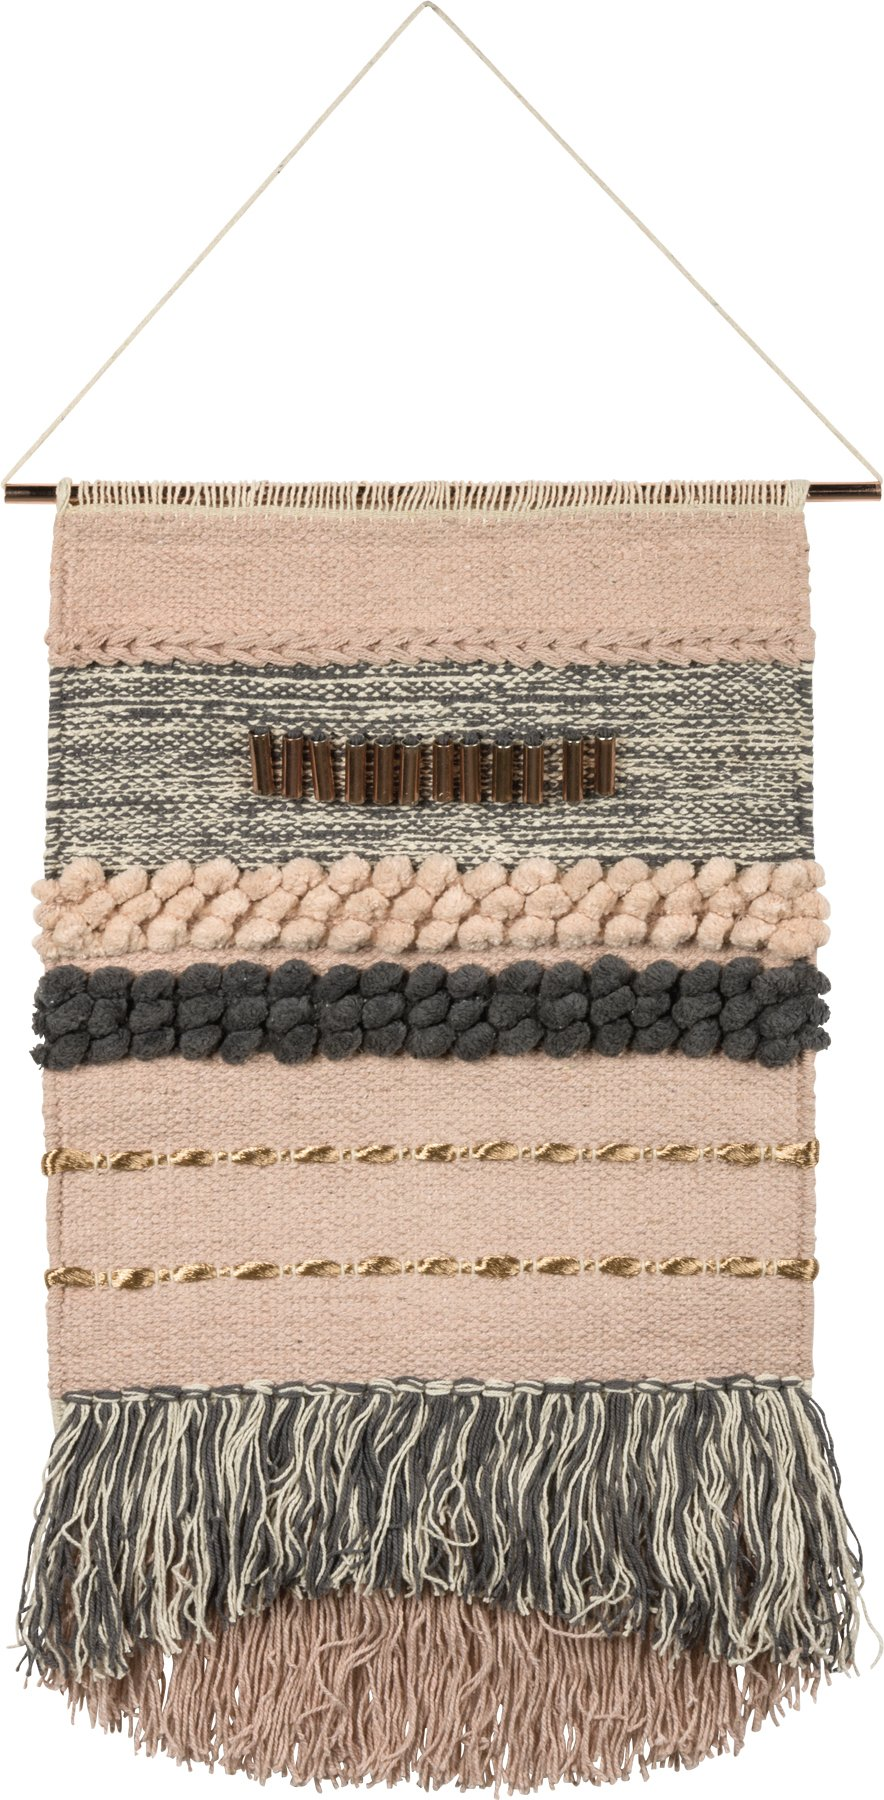 Primitives by Kathy Inspire 14-Inch-by-23-Inch Cotton and Metal Woven Wall Hanging, Pink and Grey by Primitives by Kathy